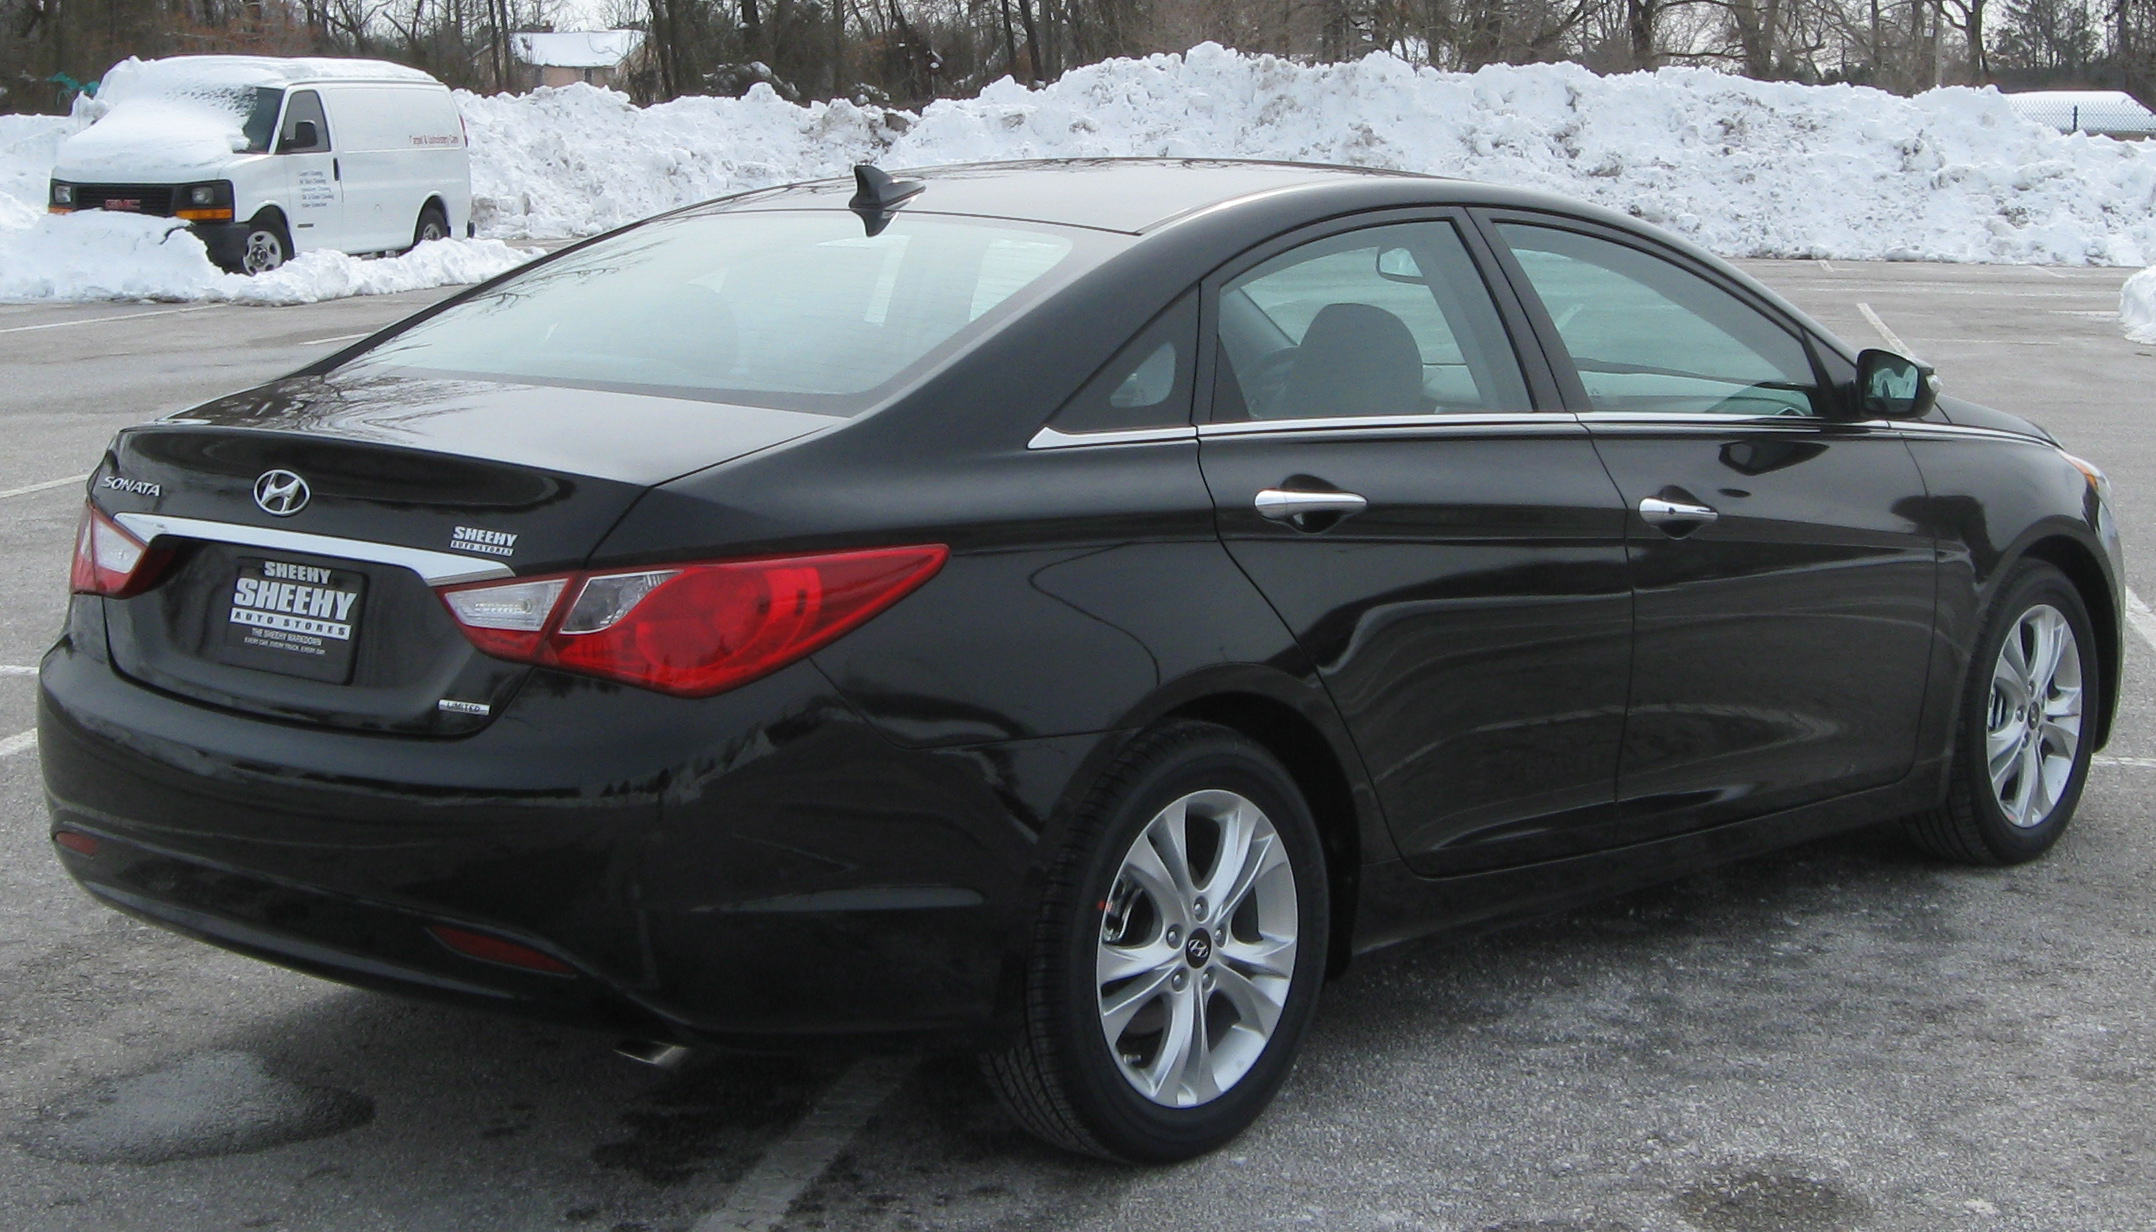 Hyundai Sonata history, photos on Better Parts LTD